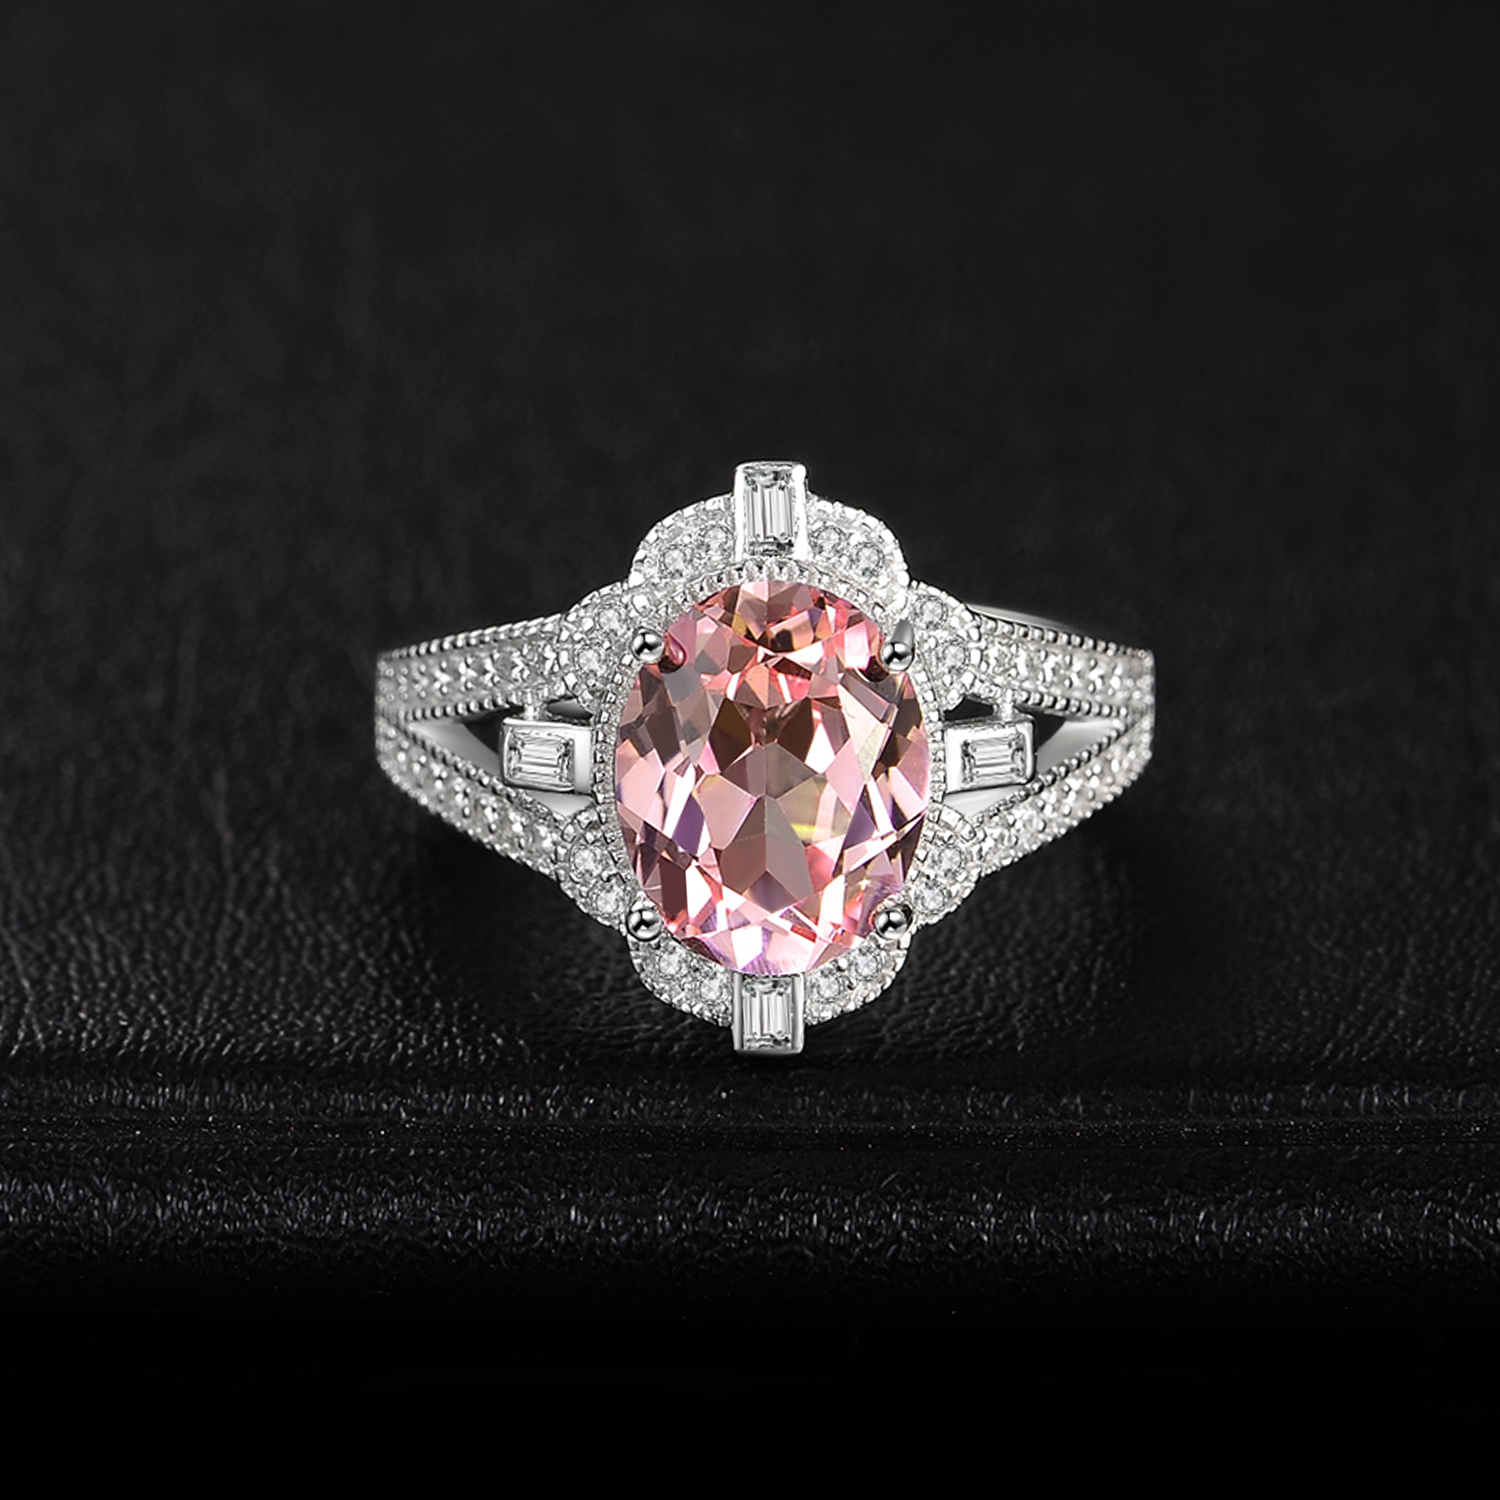 Image 2 - JewelryPalace Vintage Split Shank 3ct Oval Created Morganite Sapphire Adjustable Open Ring 925 Sterling Silver Jewelry MakingRings   -